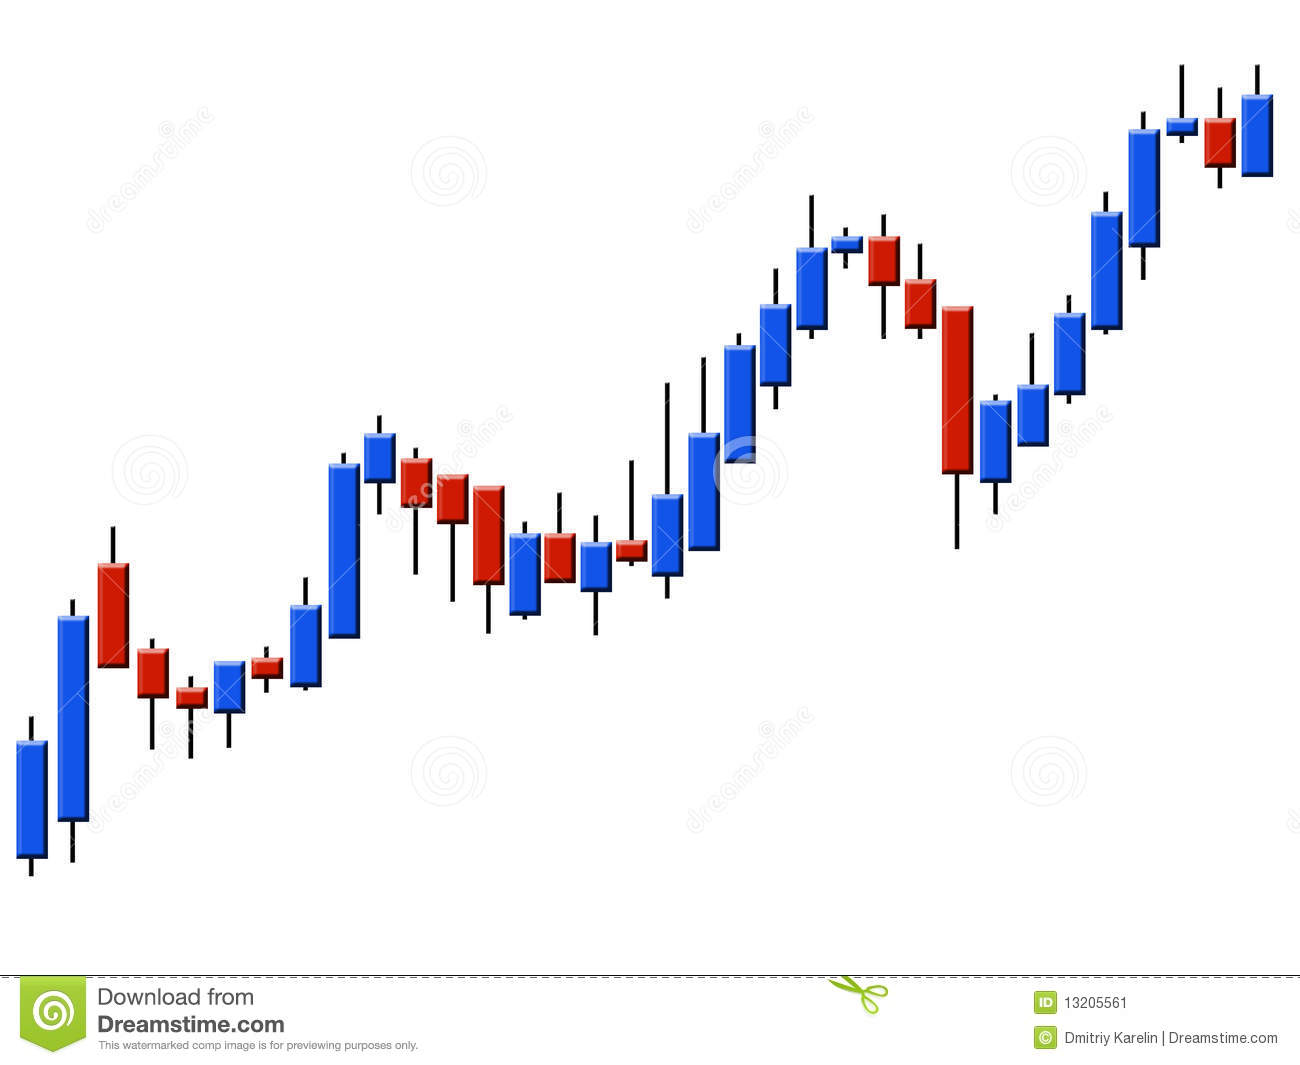 Beginners Course on Forex Trading - Alpha Trading Floor